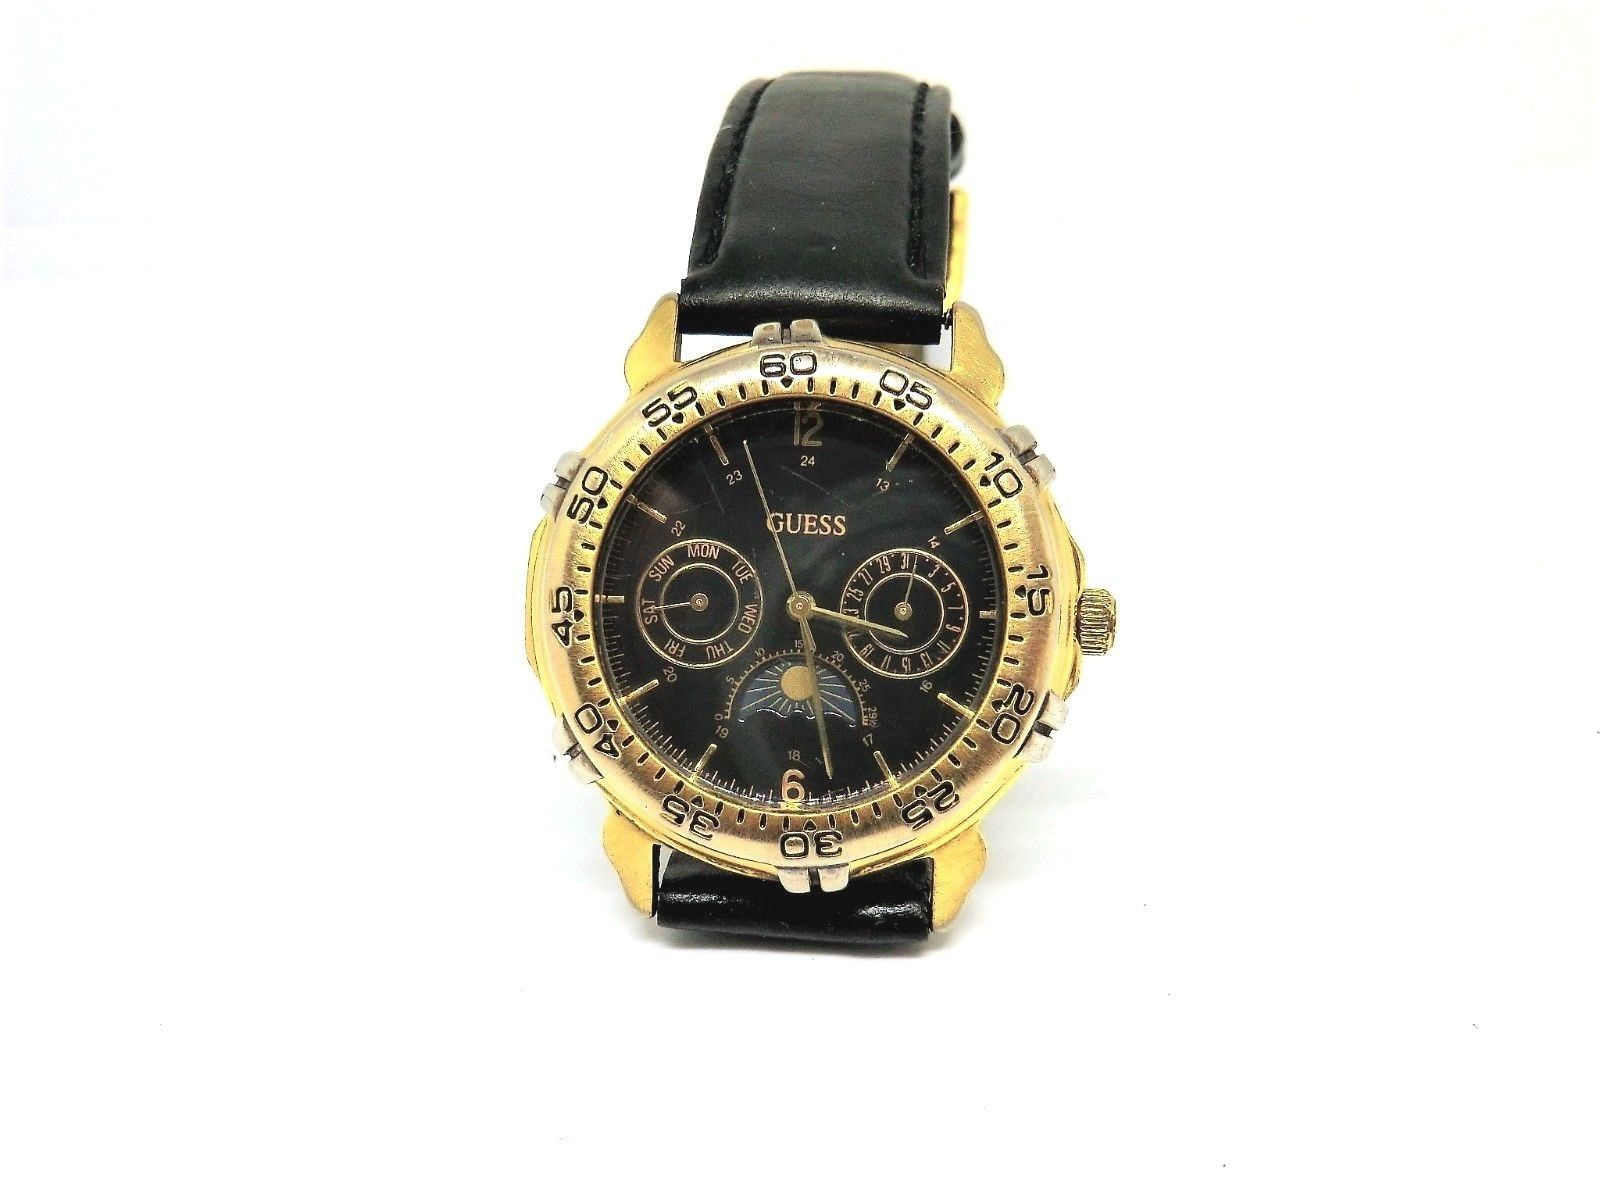 90s Retro GUESS Black Sun Moon Phase Unisex Watch Cleaned New Battery Installed - $64.35